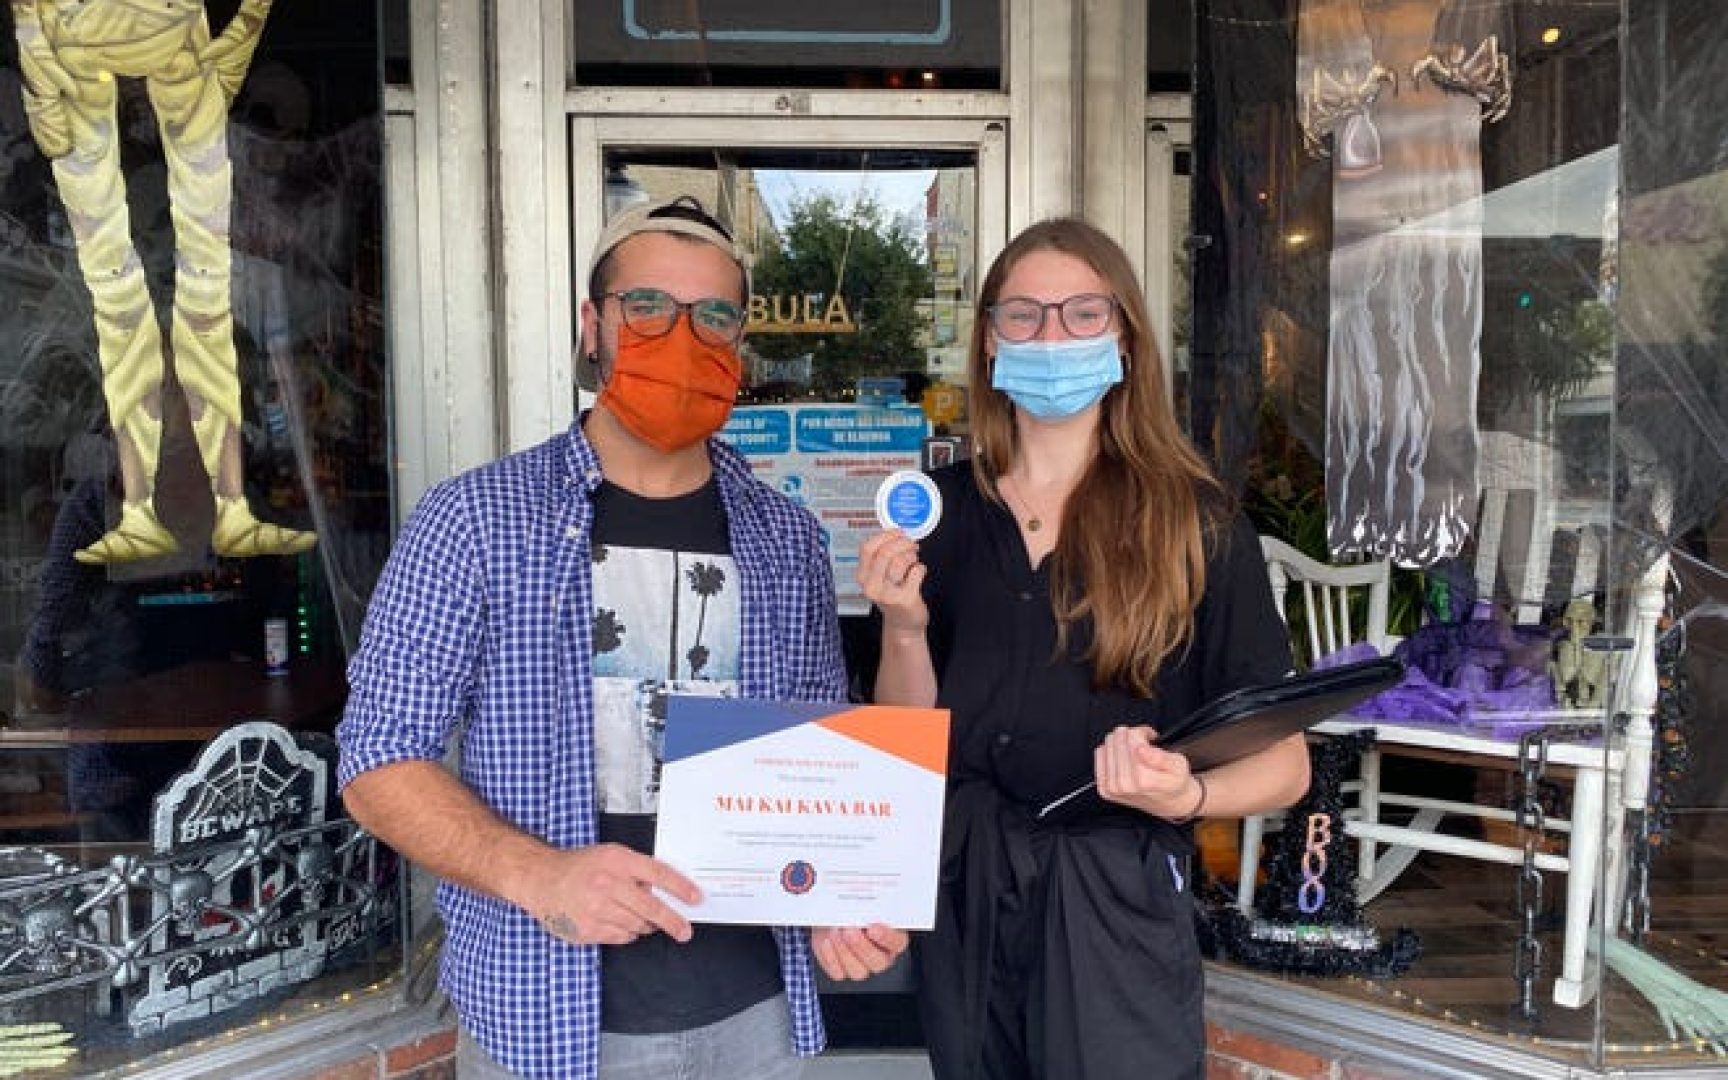 Two people stand in a doorway. Both wear masks as one holds up a certificate and the other holds a sticker.